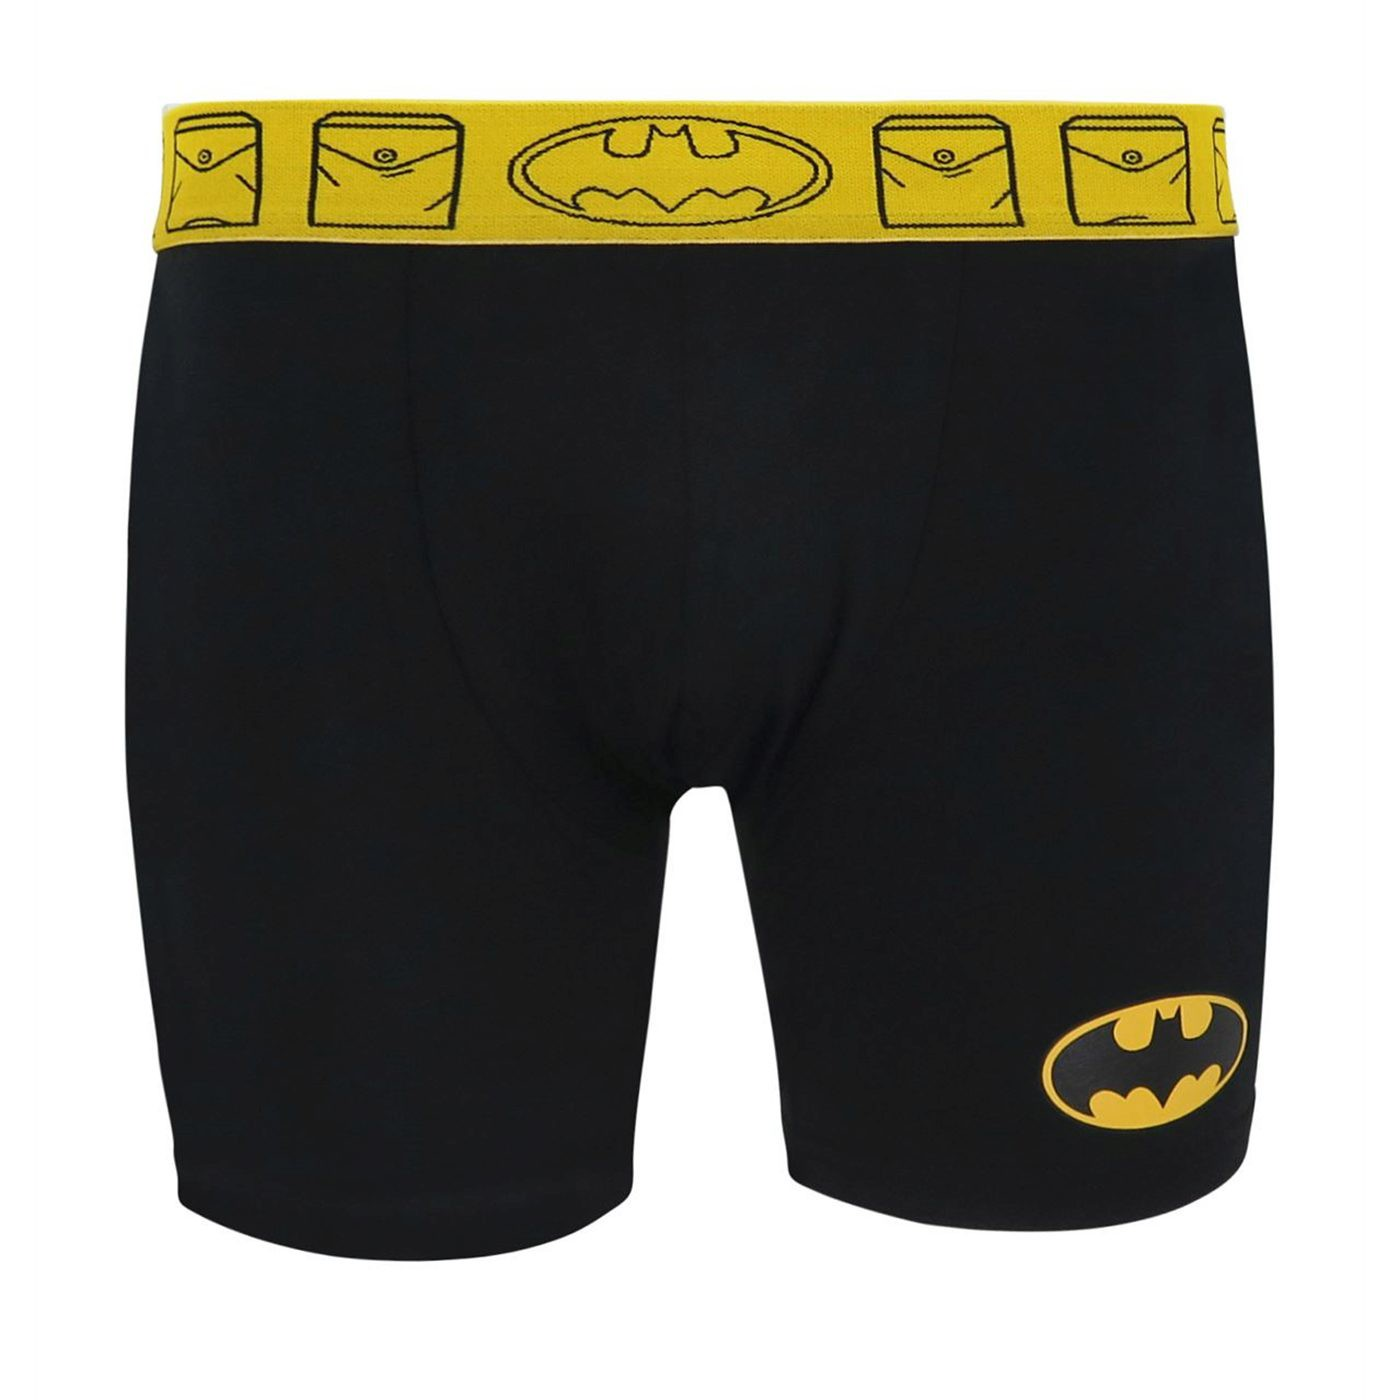 Batman Symbol Men's Underwear Fashion Boxer Briefs